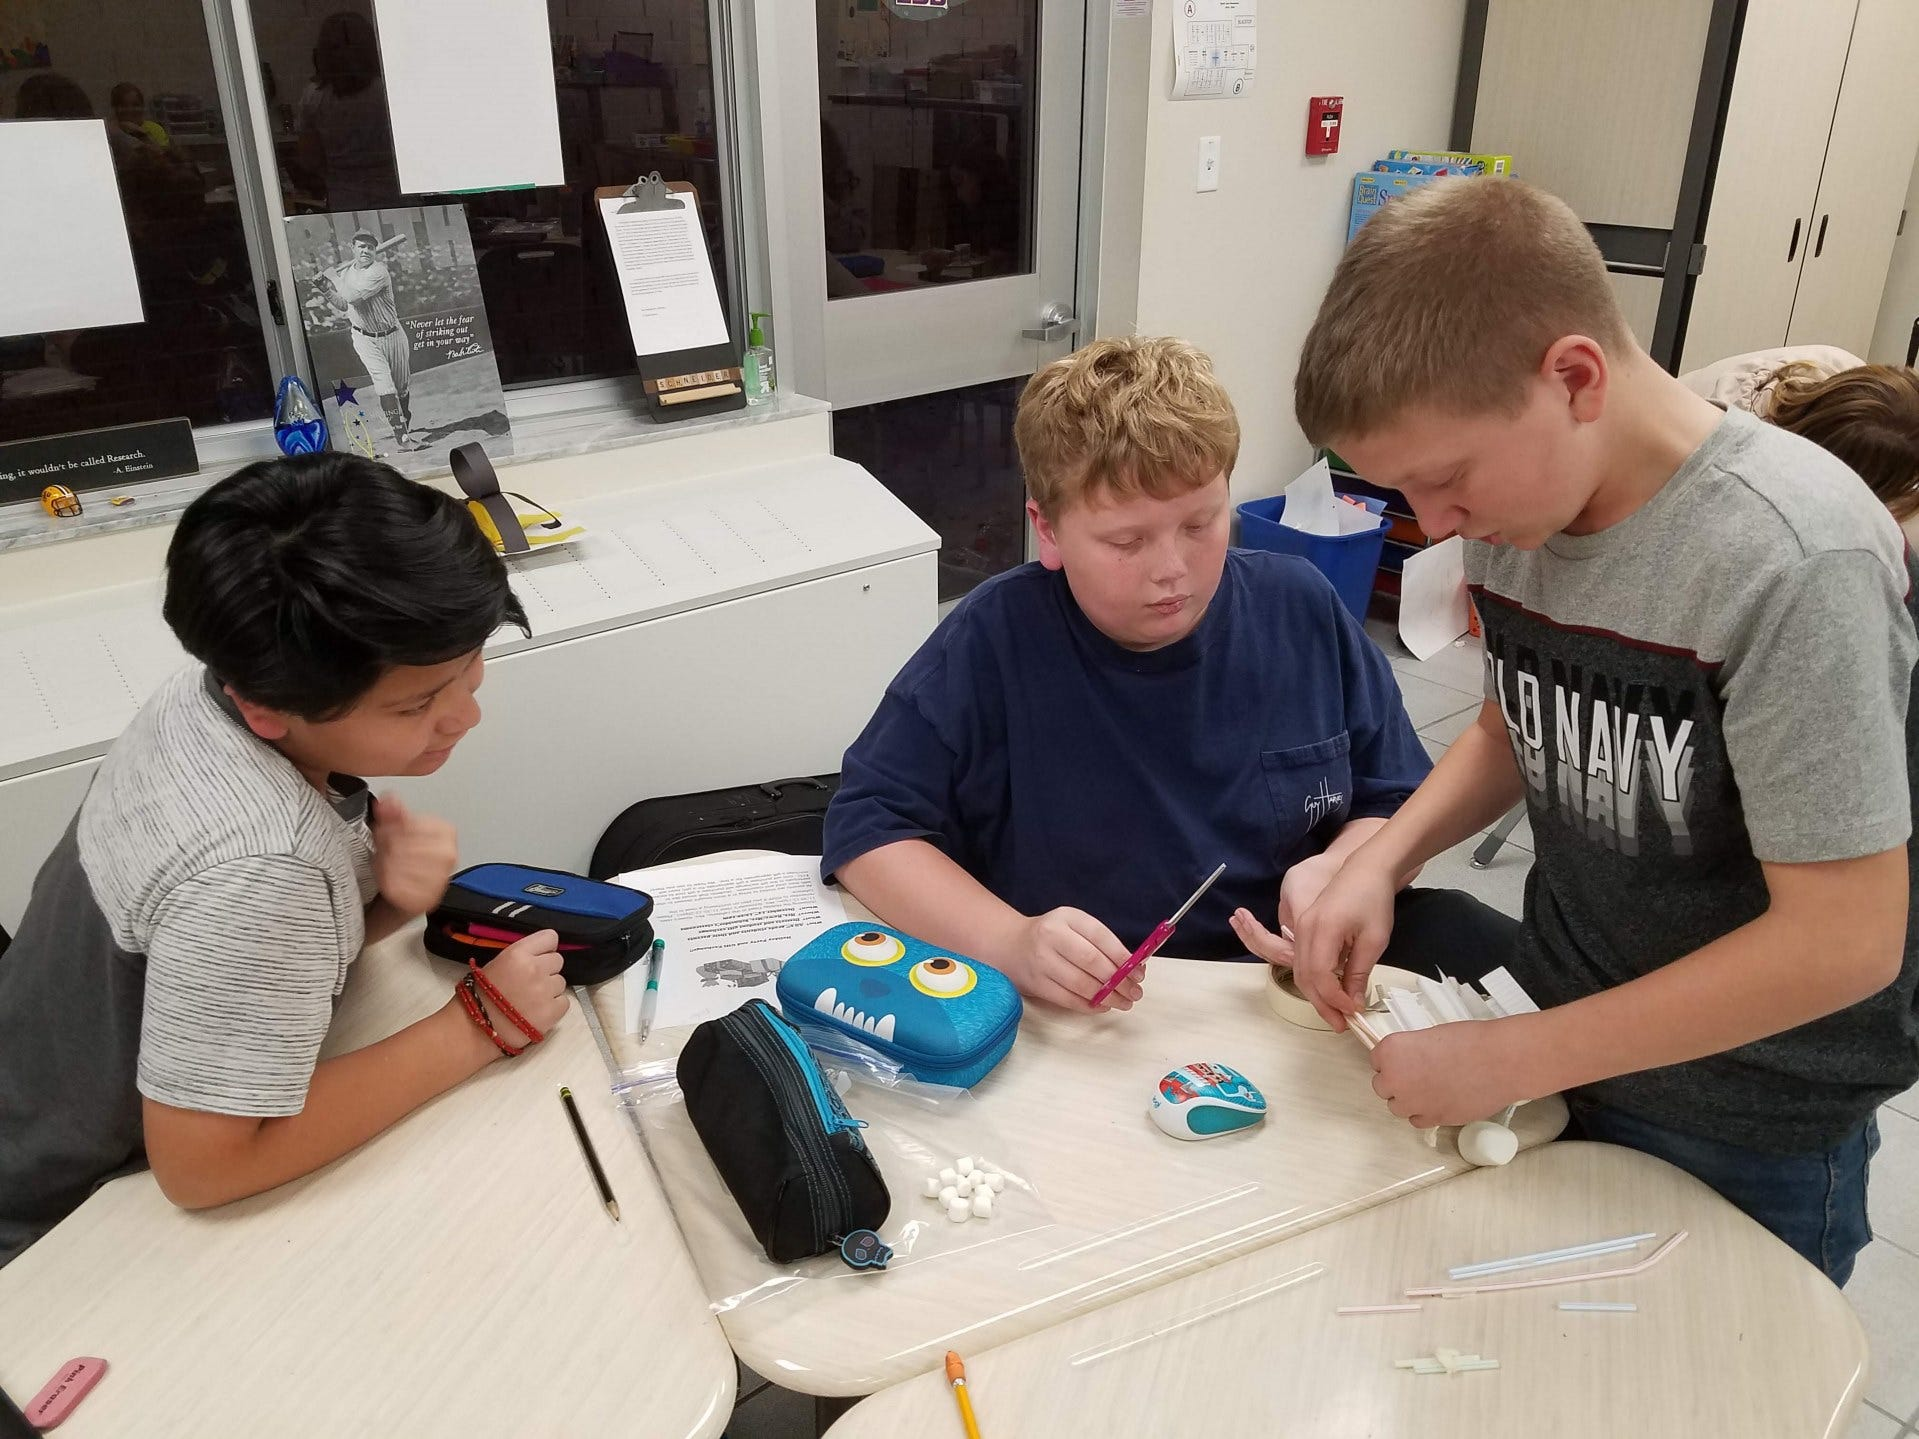 South Lake Elementary School students work together as part of the Destination Mars program. Students from 14 different schools will compete on Feb. 28 at the Brevard County School Disitrict office.